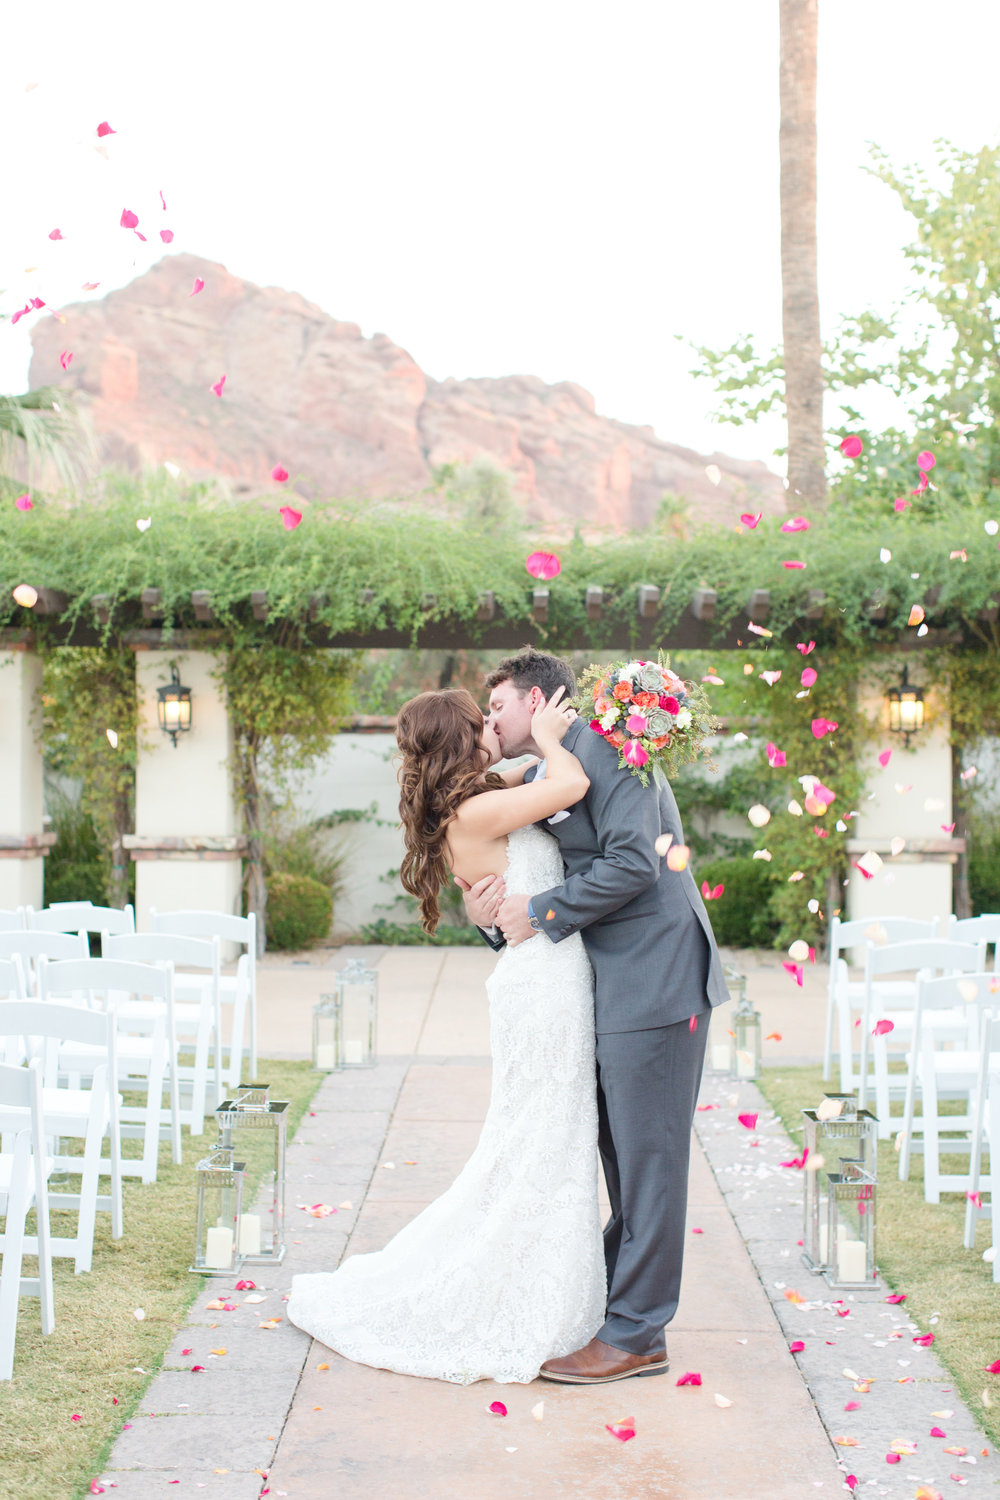 Phoenix-Scottsdale-Arizona-Wedding-Planner-Wedding-Venue-Destination-Wedding-Planner, Omni Montelucia weddings, sunset weddings, Arizona Sunset weddings, wedding details, bride and groom, wedding petal kiss, wedding petal ceremony kiss, ceremony kiss